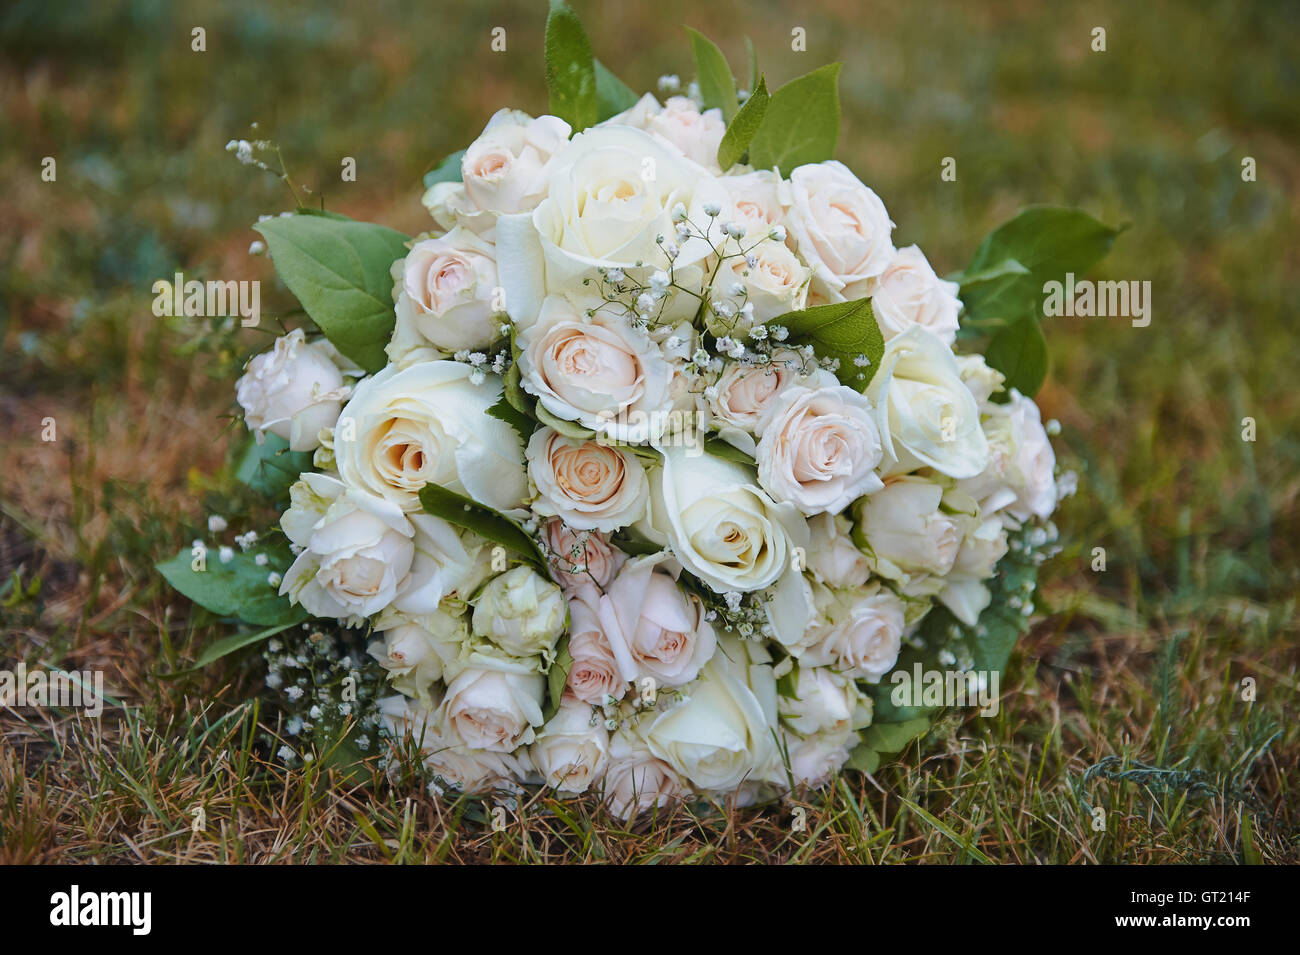 Cream flowers with Babies Breath